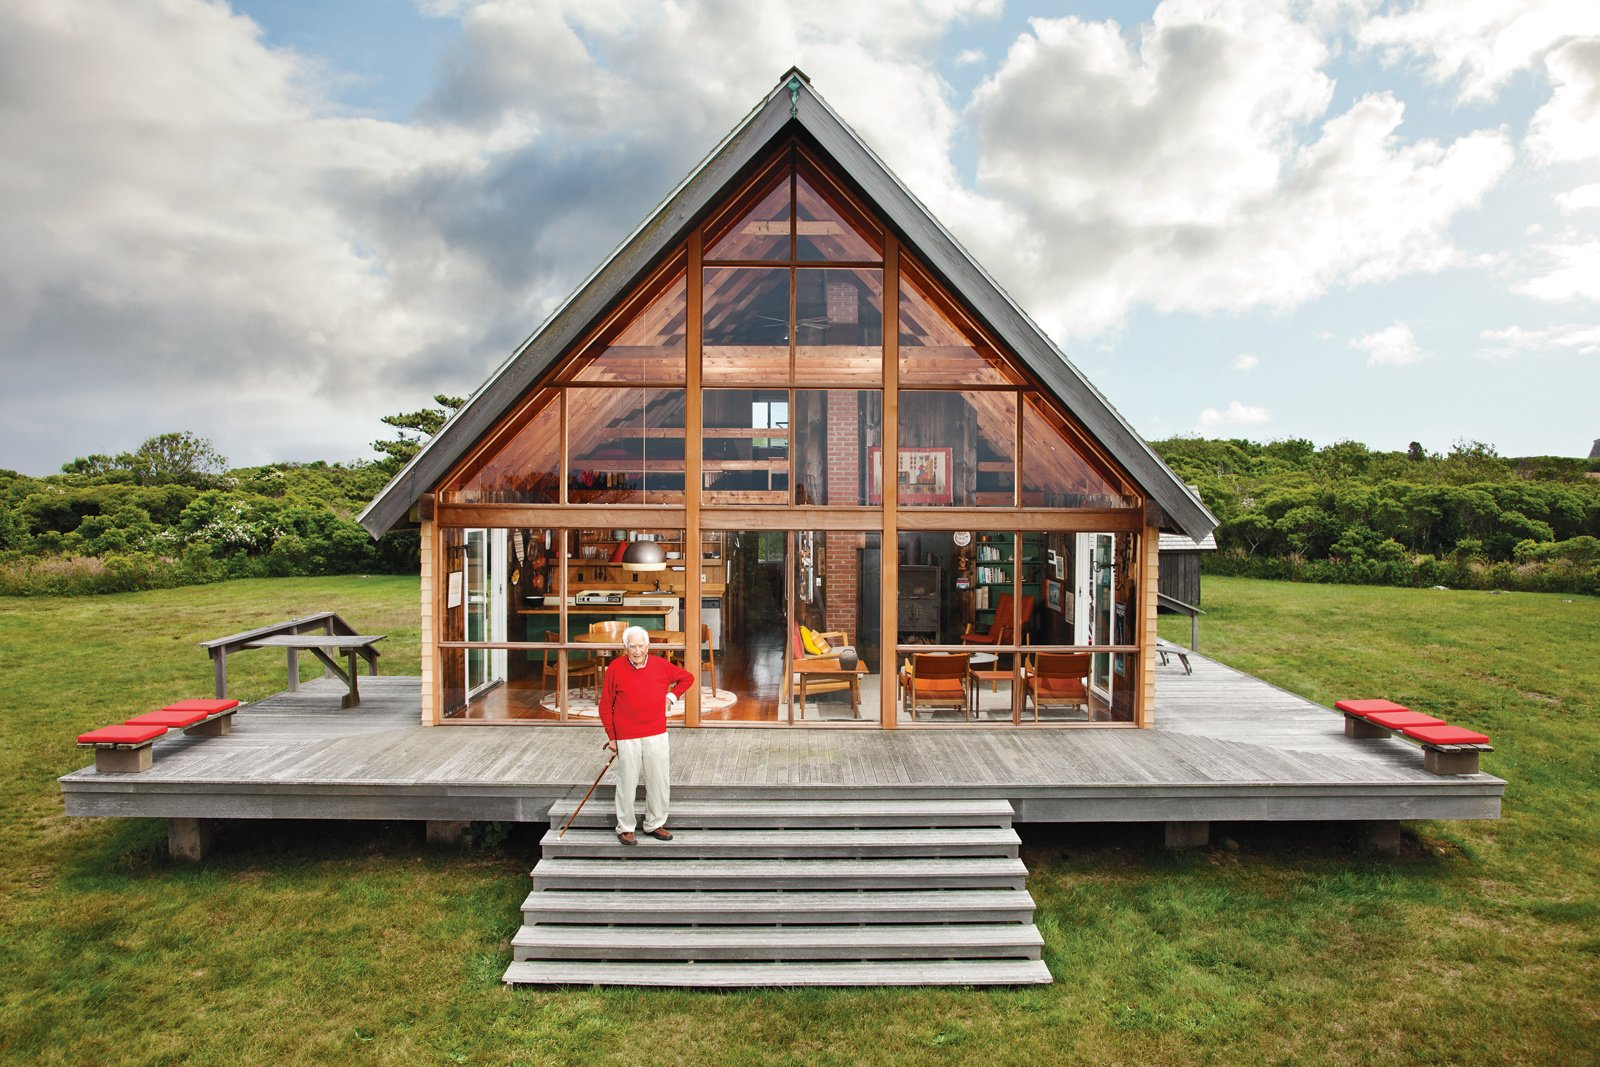 Exterior, House Building Type, Prefab Building Type, and Gable RoofLine Renowned designer and architect Jens Risom sourced parts from a catalog for his customized A-frame and had them delivered in pieces to his remote island site off Rhode Island, helped to raise the aesthetic profile of modular construction.  Amazing Prefabs by Erika Heet